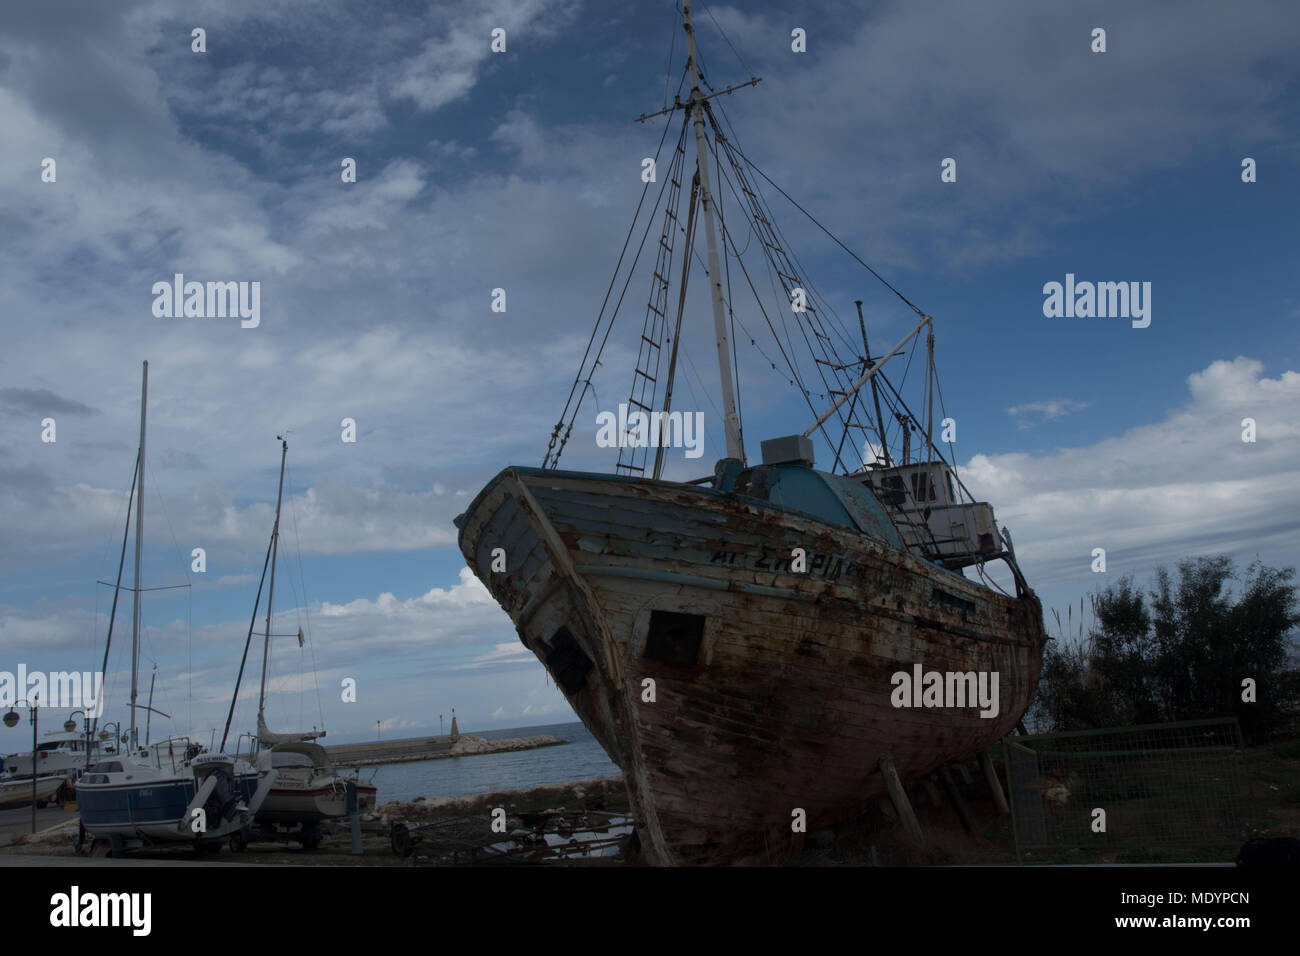 Wooden ship in need of repair, dry dock, Polis, Cyprus - Stock Image